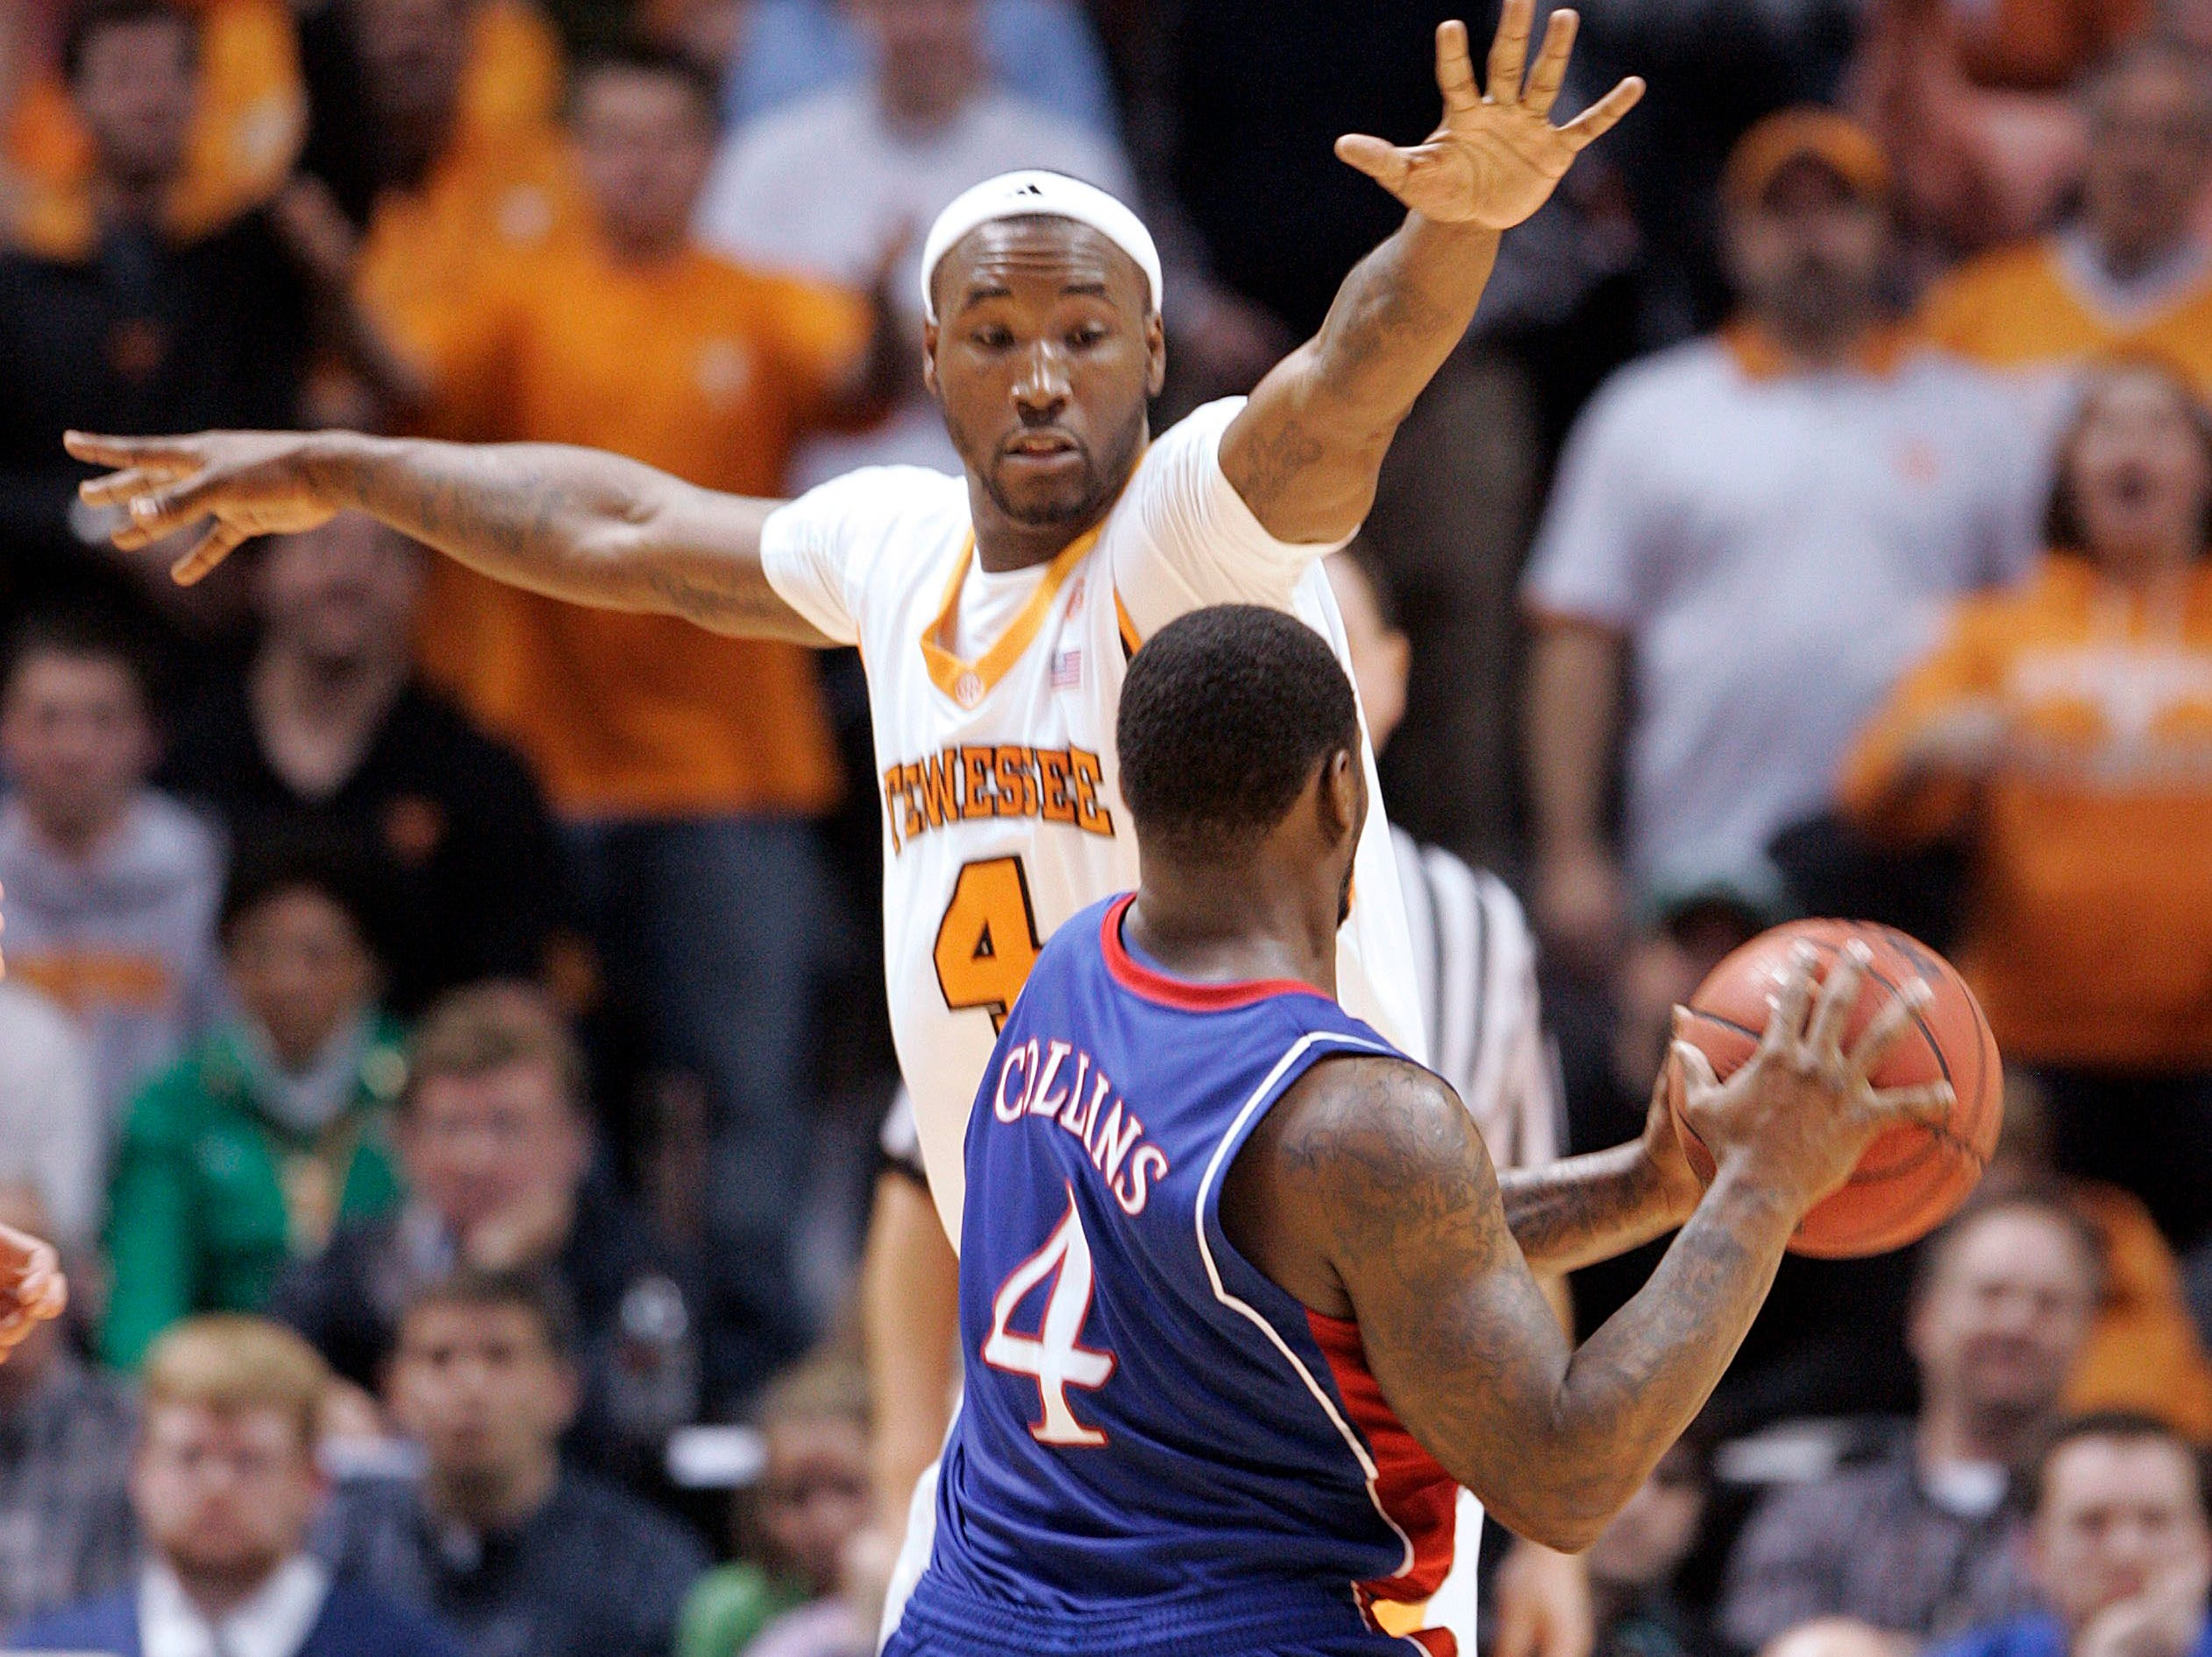 Kansas' Sherron Collins (4) passes the ball while Tennessee's Wayne Chism (4) defends during the second half of an NCAA college basketball game Sunday, Jan. 10, 2010, in Knoxville, Tenn. Tennessee won 76-68.